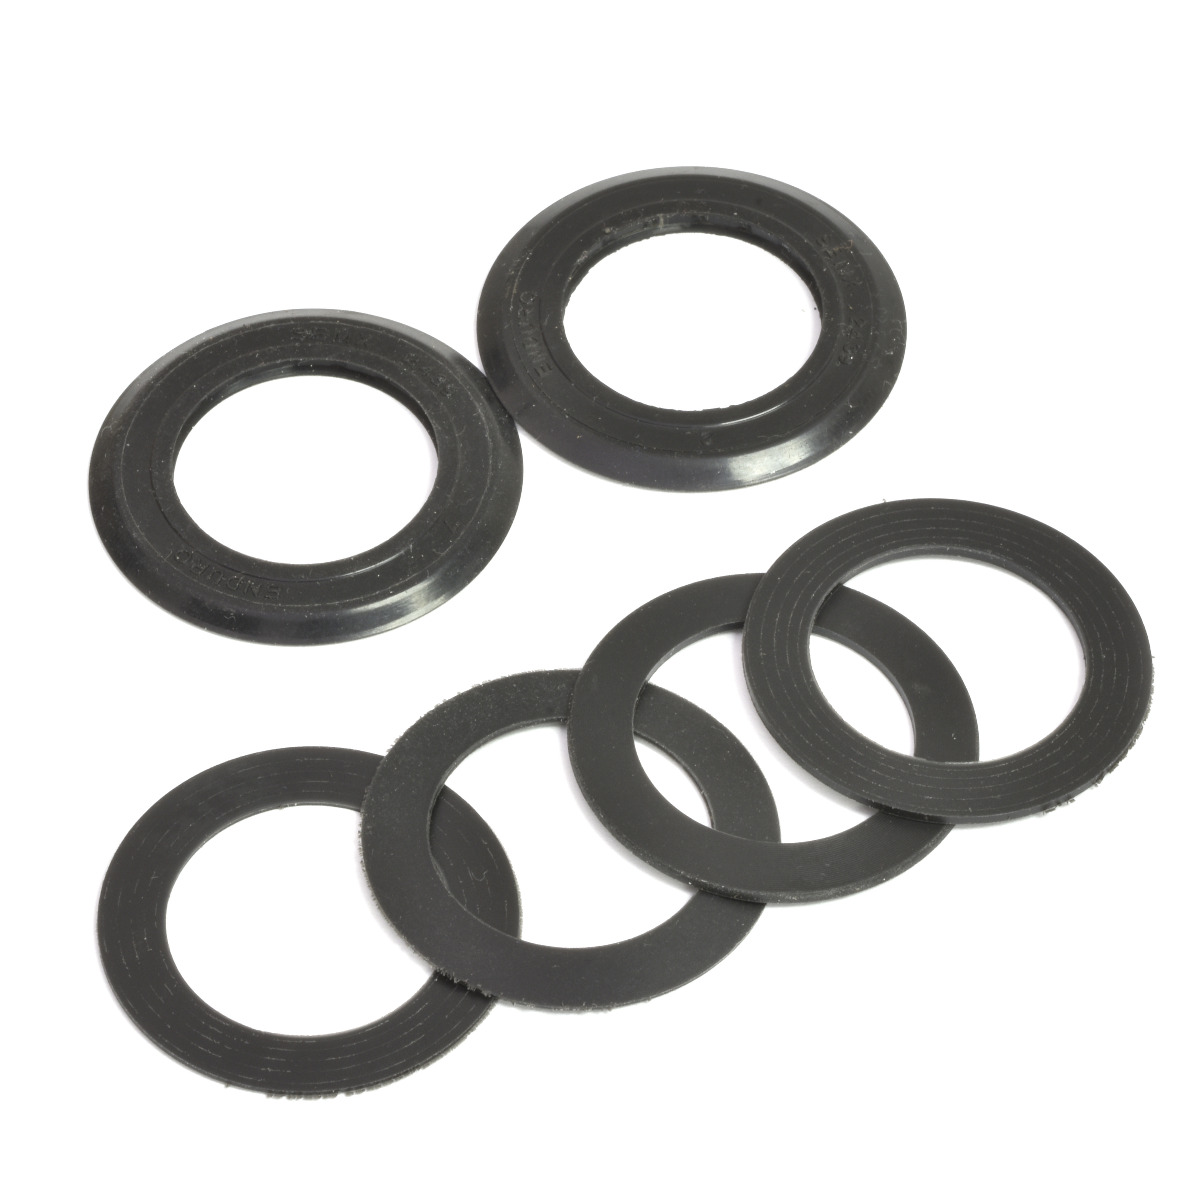 Wheels Manufacturing Inc. Repair Pack for 24mm (Shimano) Bottom Brackets Color: Black